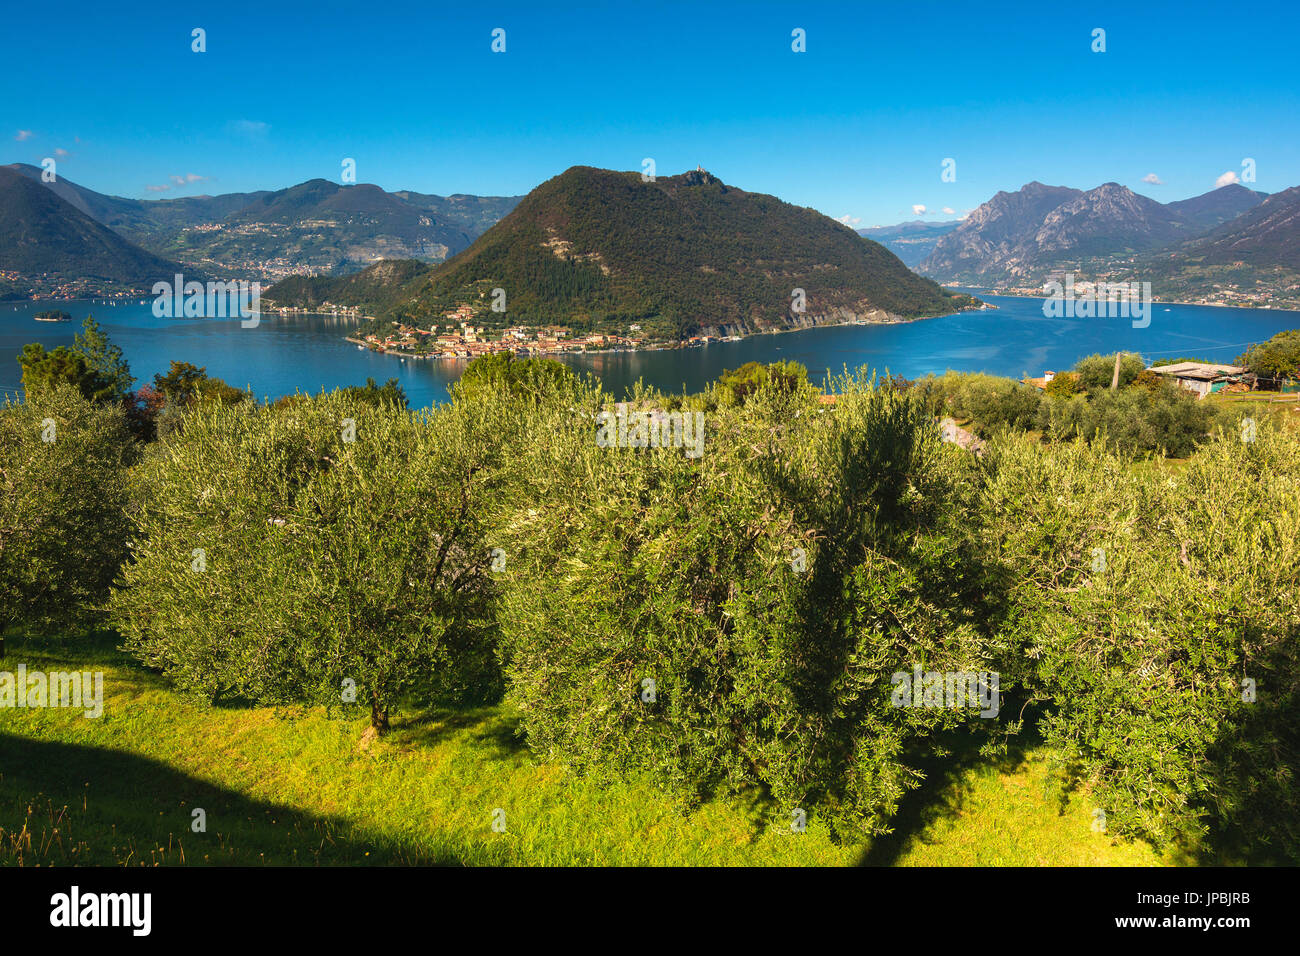 Iseo lake, Brescia province, Italy, Lombardy district, Europe. - Stock Image